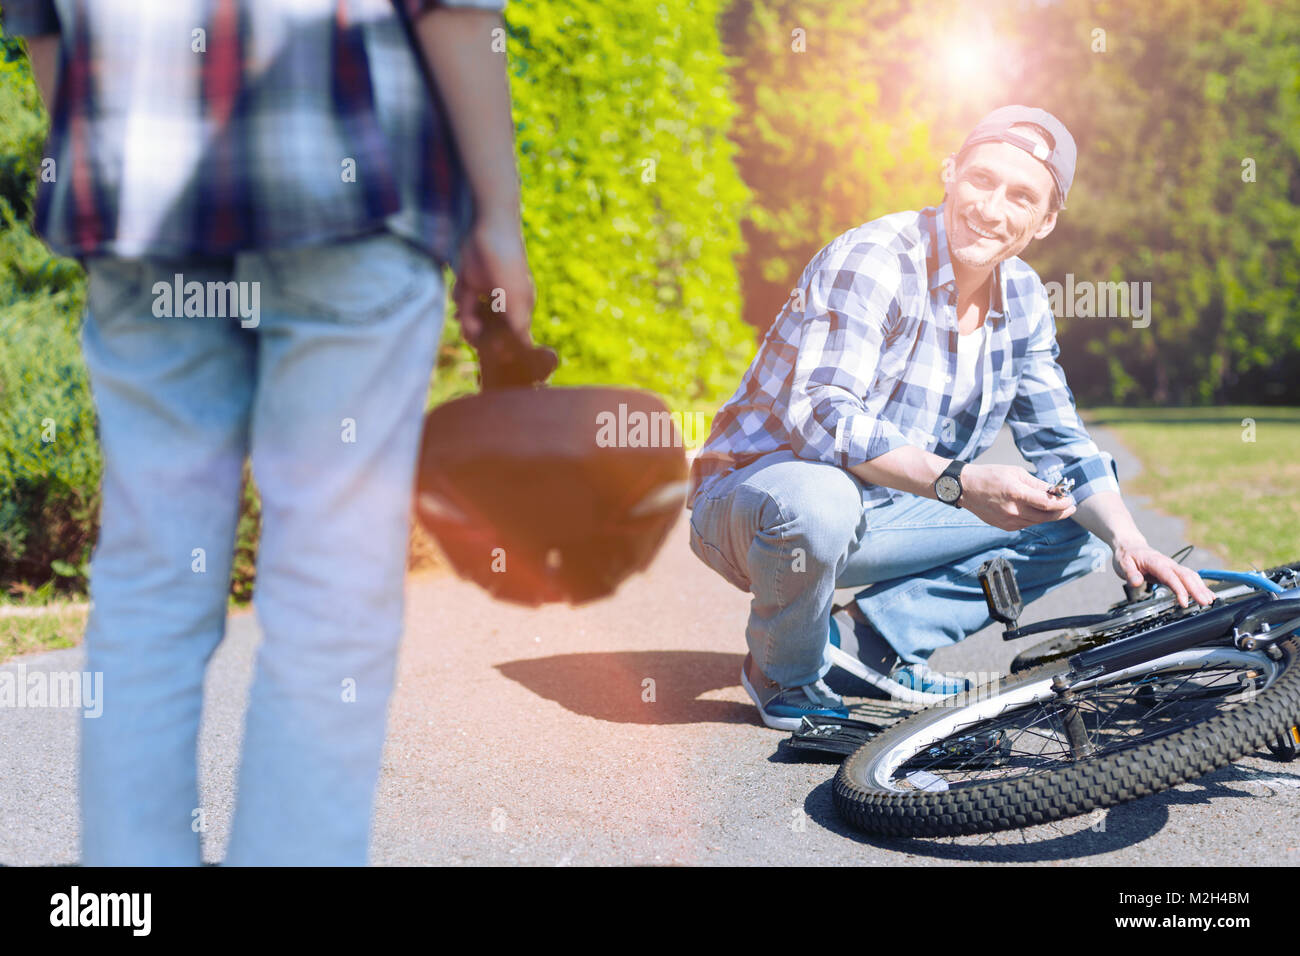 Son watching father fixing bicycle in park - Stock Image